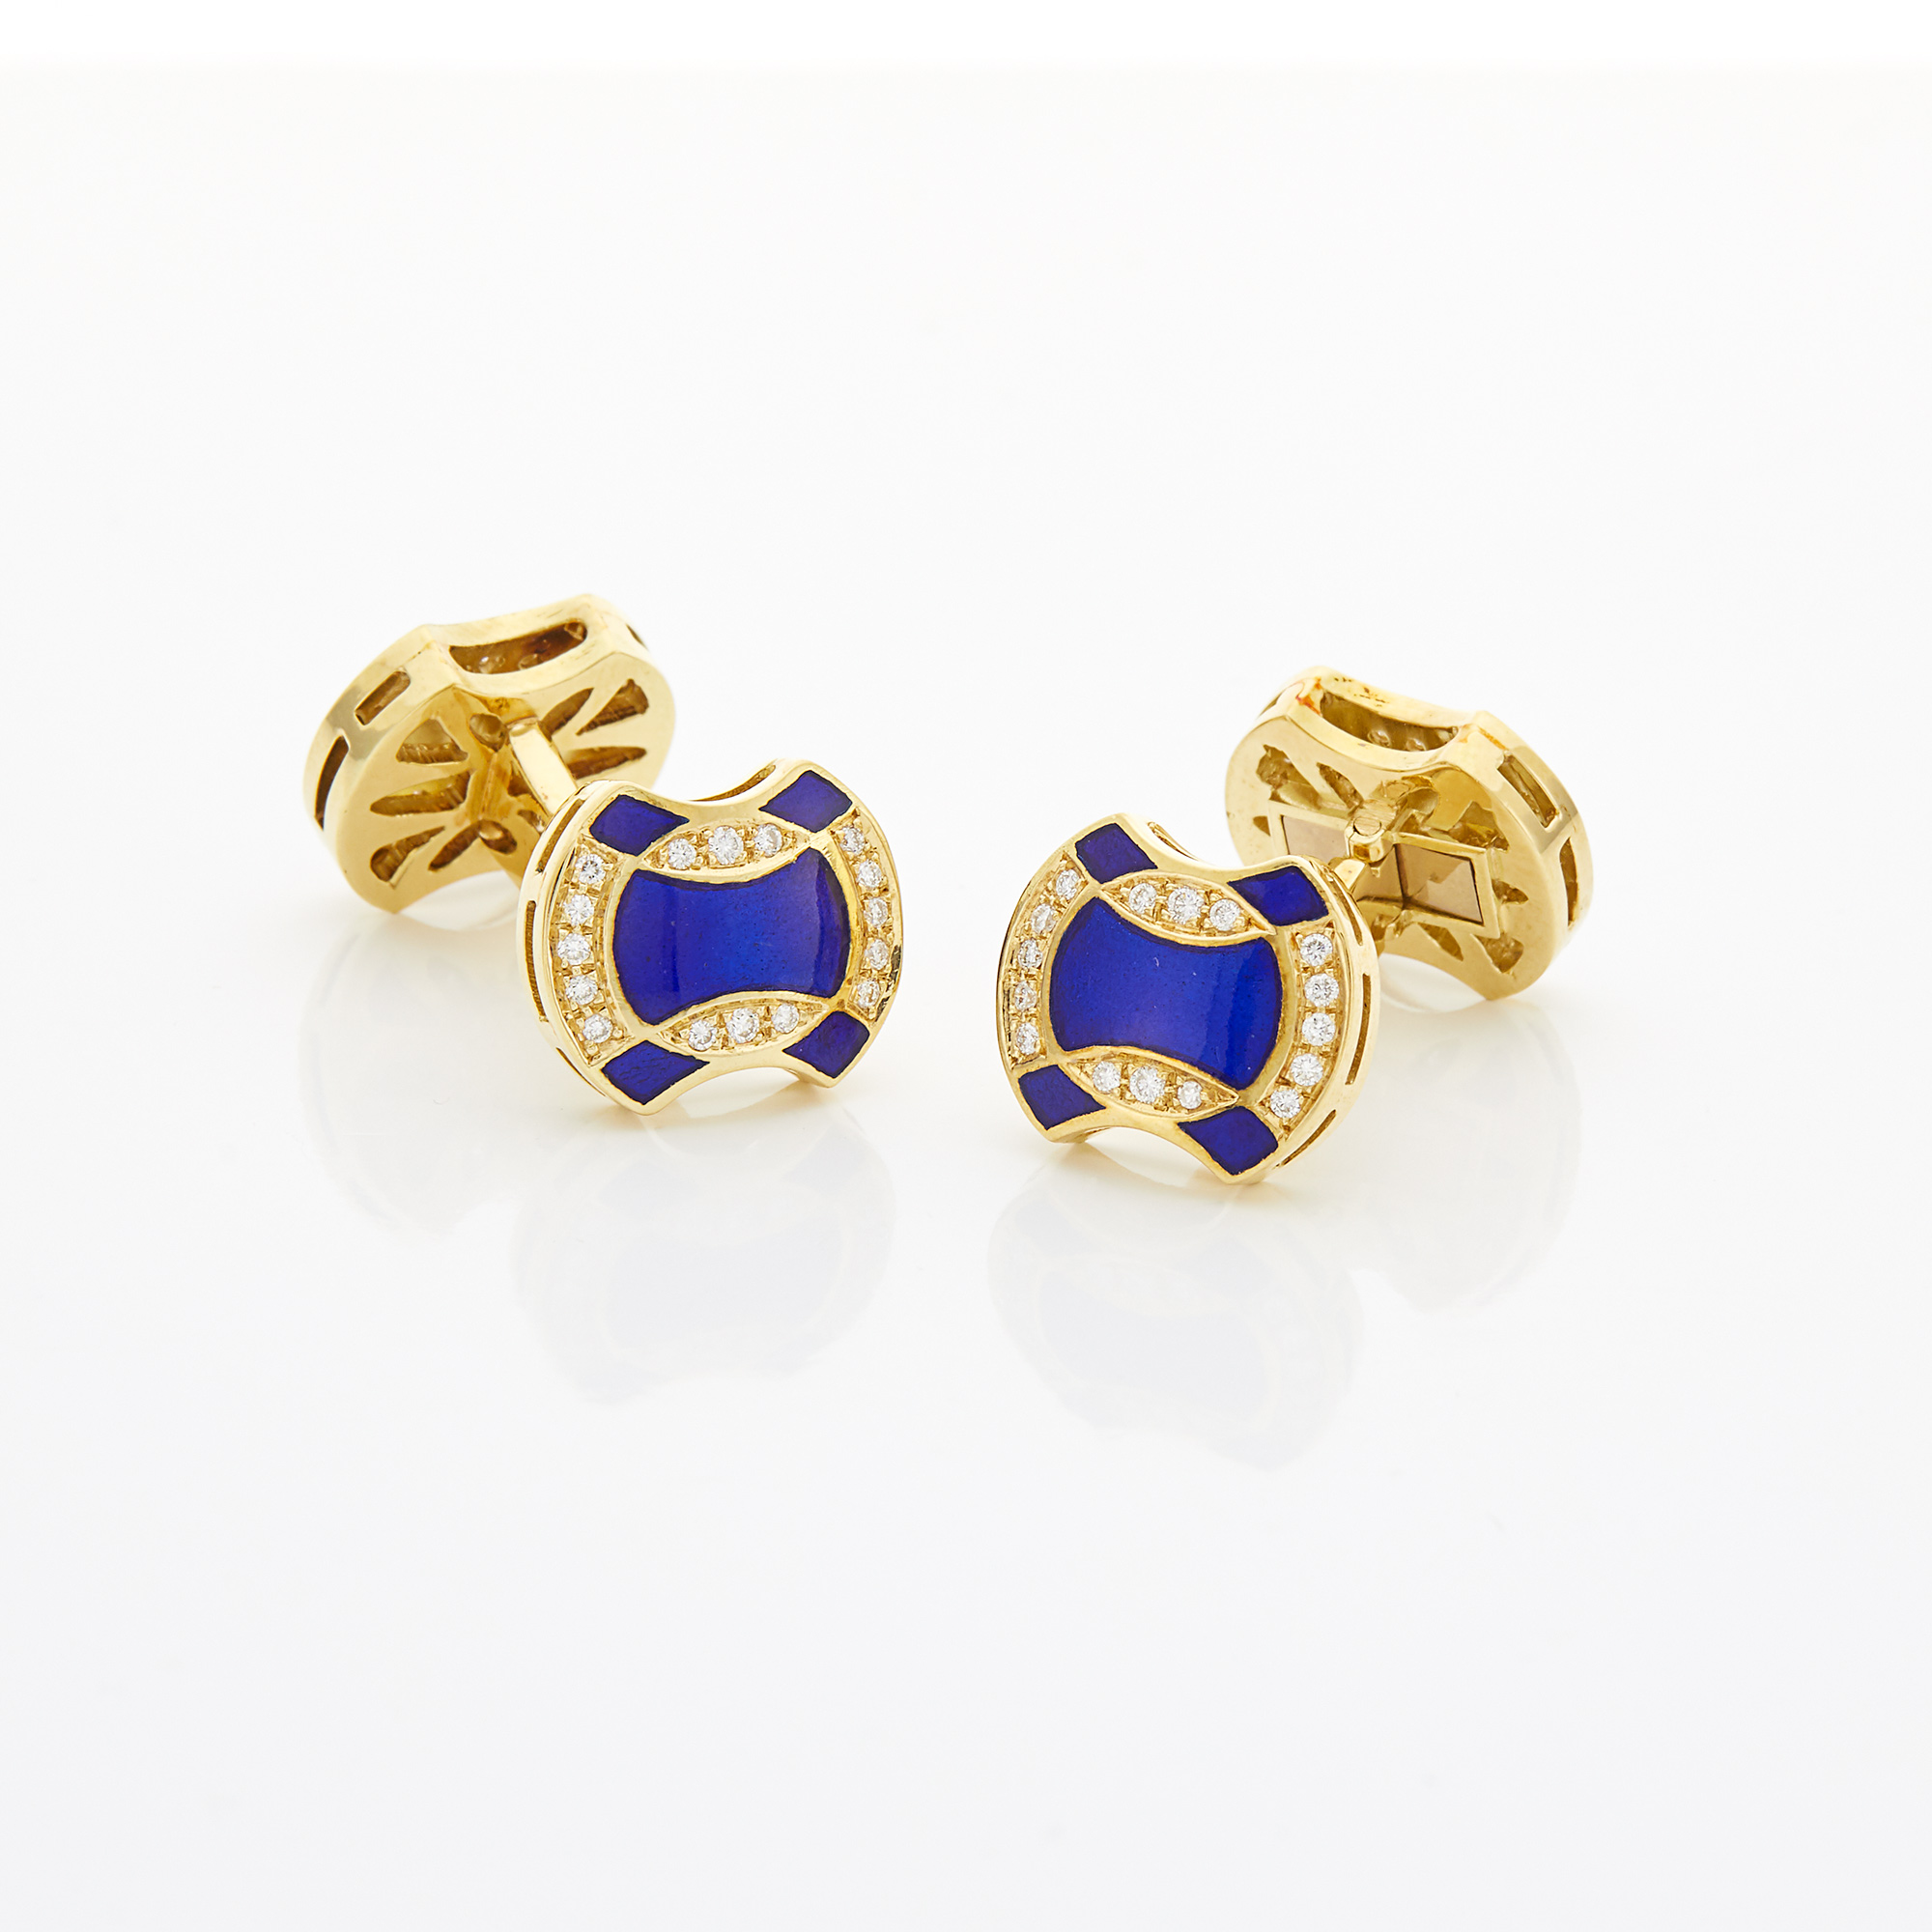 Lot image - Pair of Gold, Blue Enamel and Diamond Cufflinks